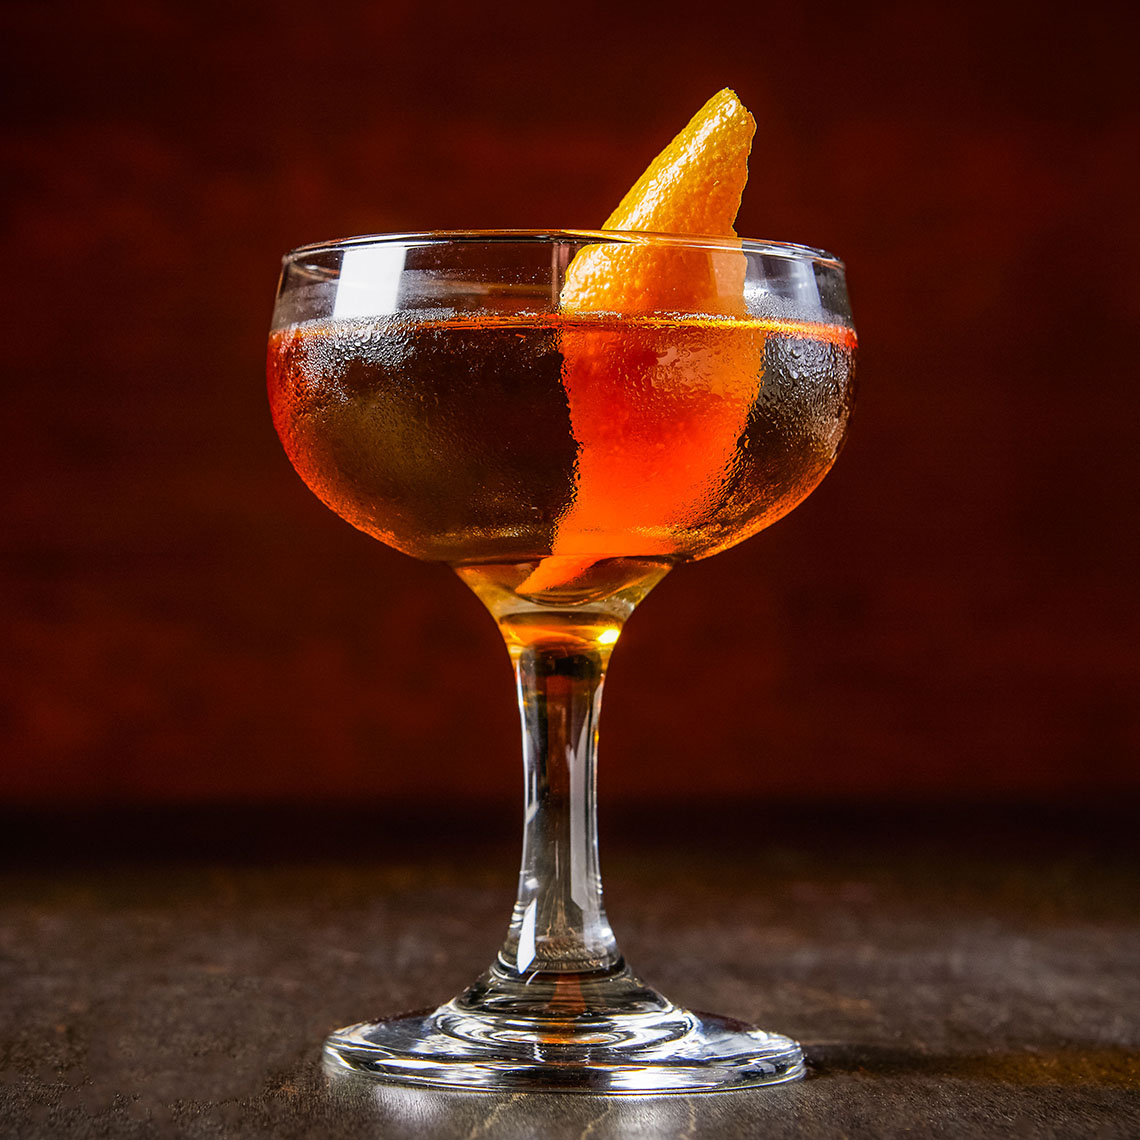 Orange cocktail in a coupe glass with orange peel garnish